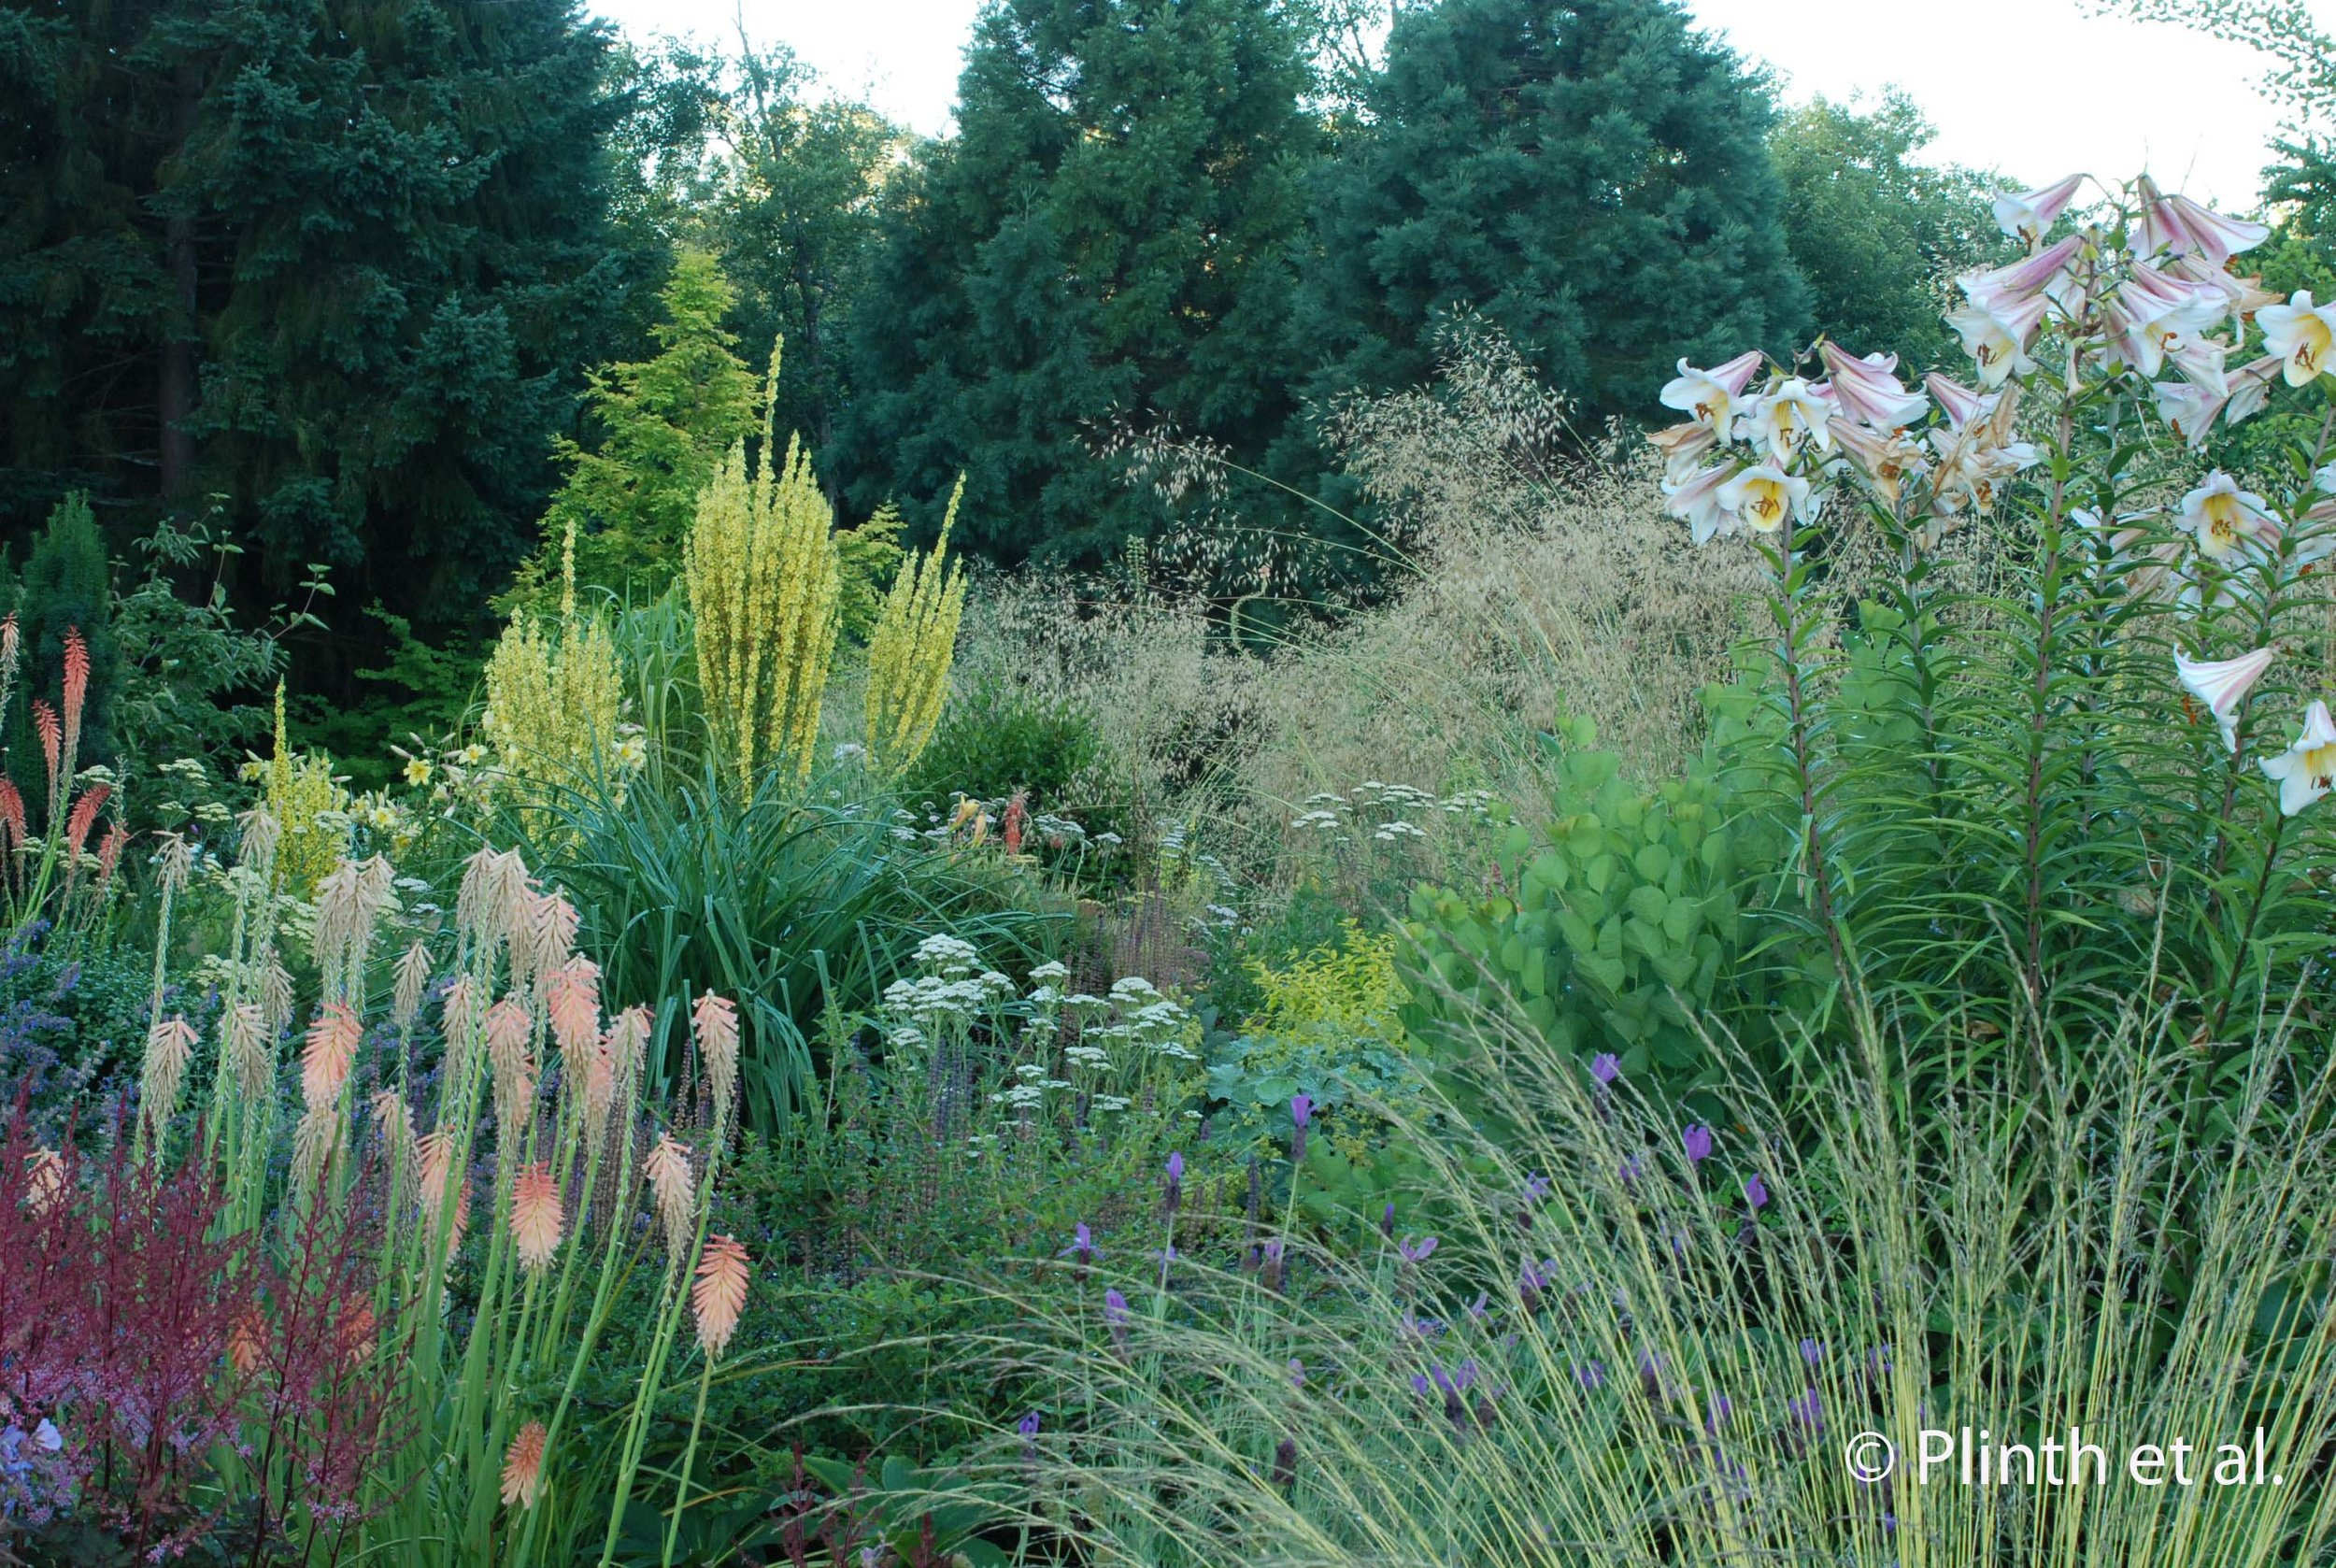 Cotinus coggyria 'Young Lady', seen behind the tall lilies (possibly Lilium sargentiae or Lilium regale) anchors the mixed plantings of grasses, Kniphofia, lavender, Astilbe, and other perennials.